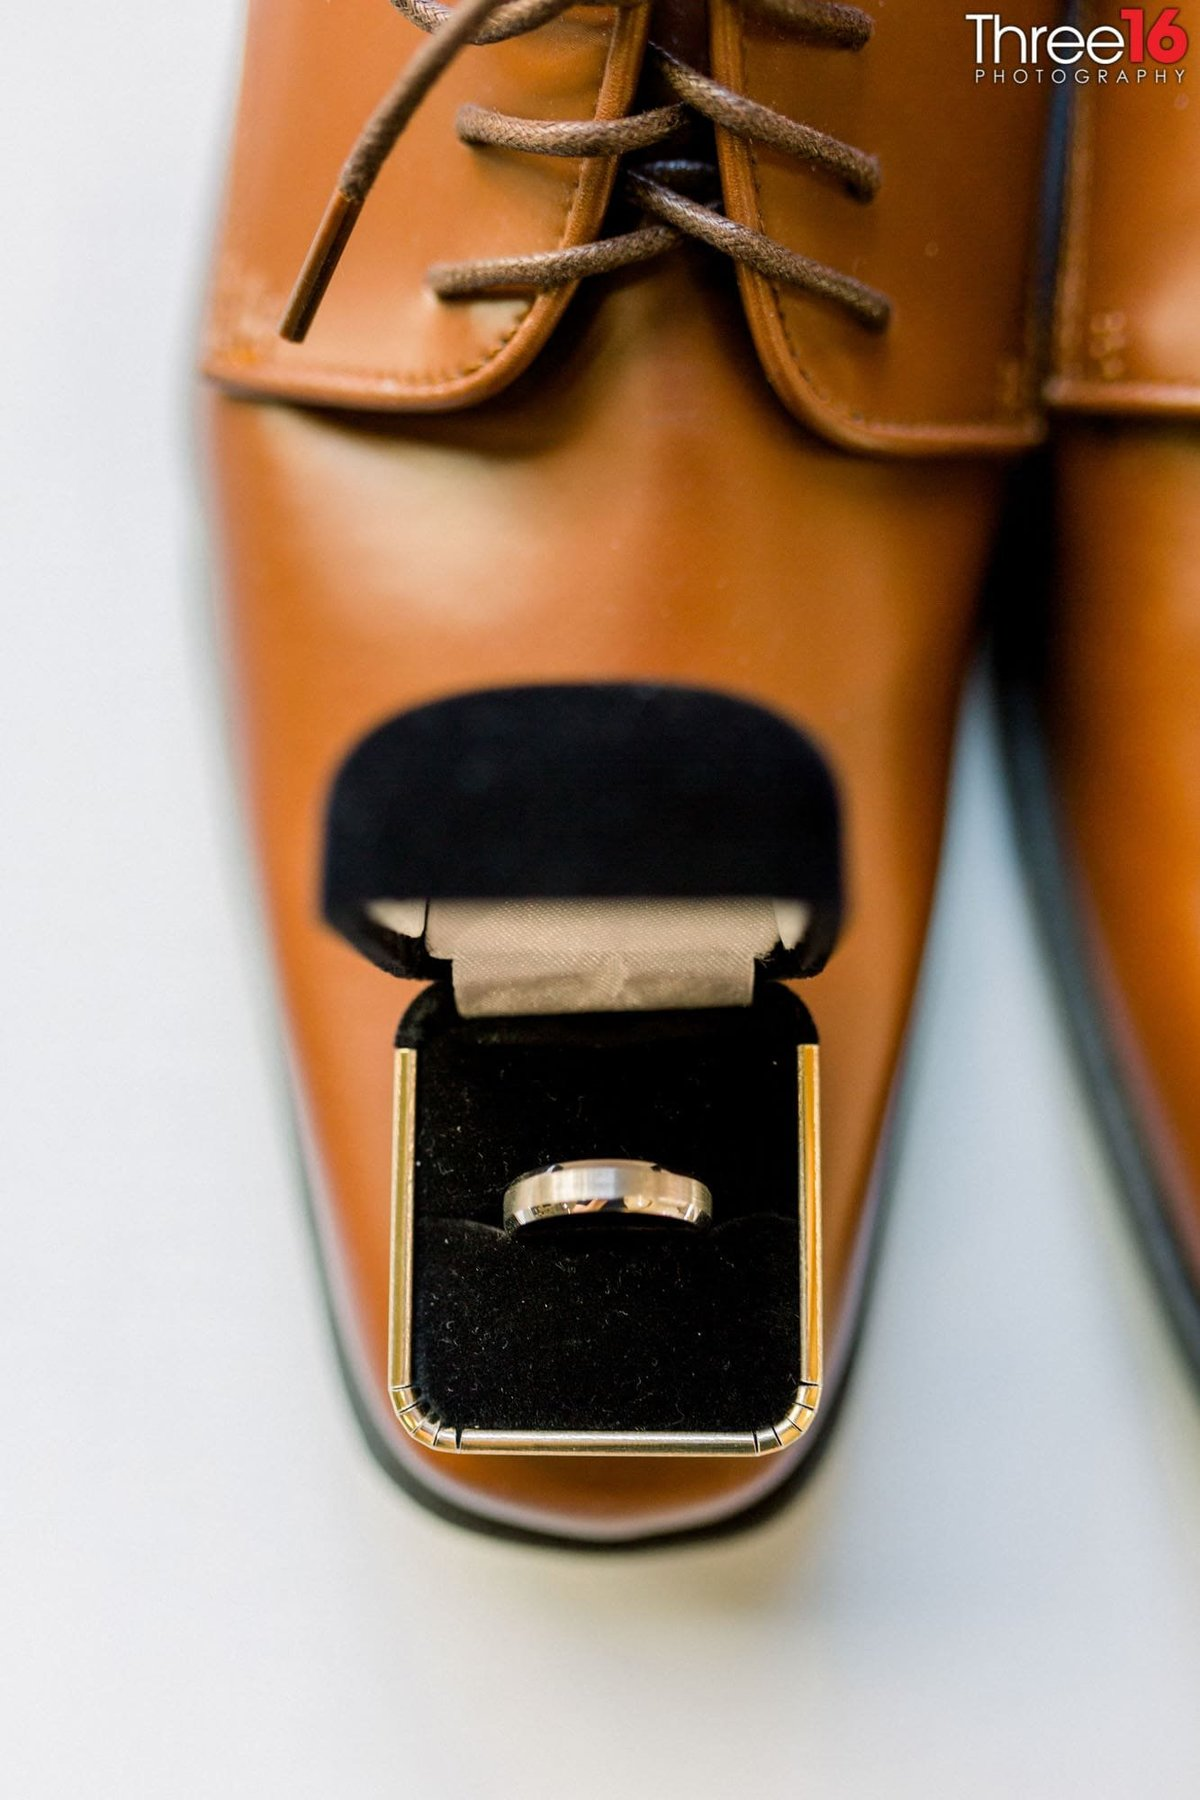 Groom's shoes and the wedding ring